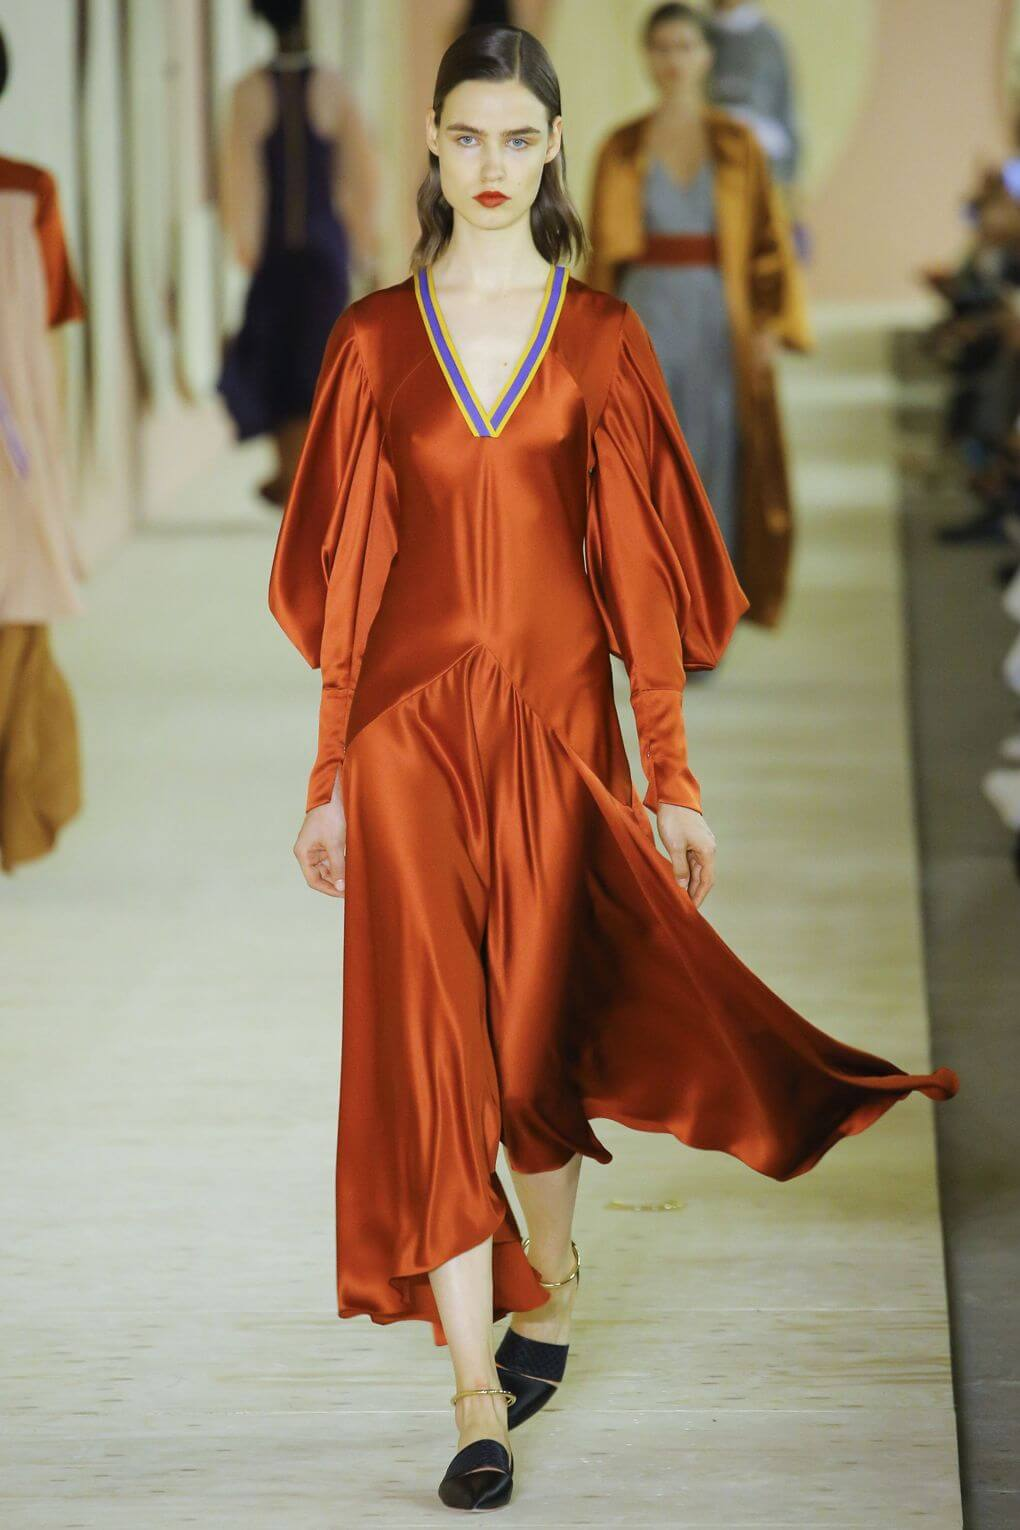 The Languid Dress LFW 2016 trends